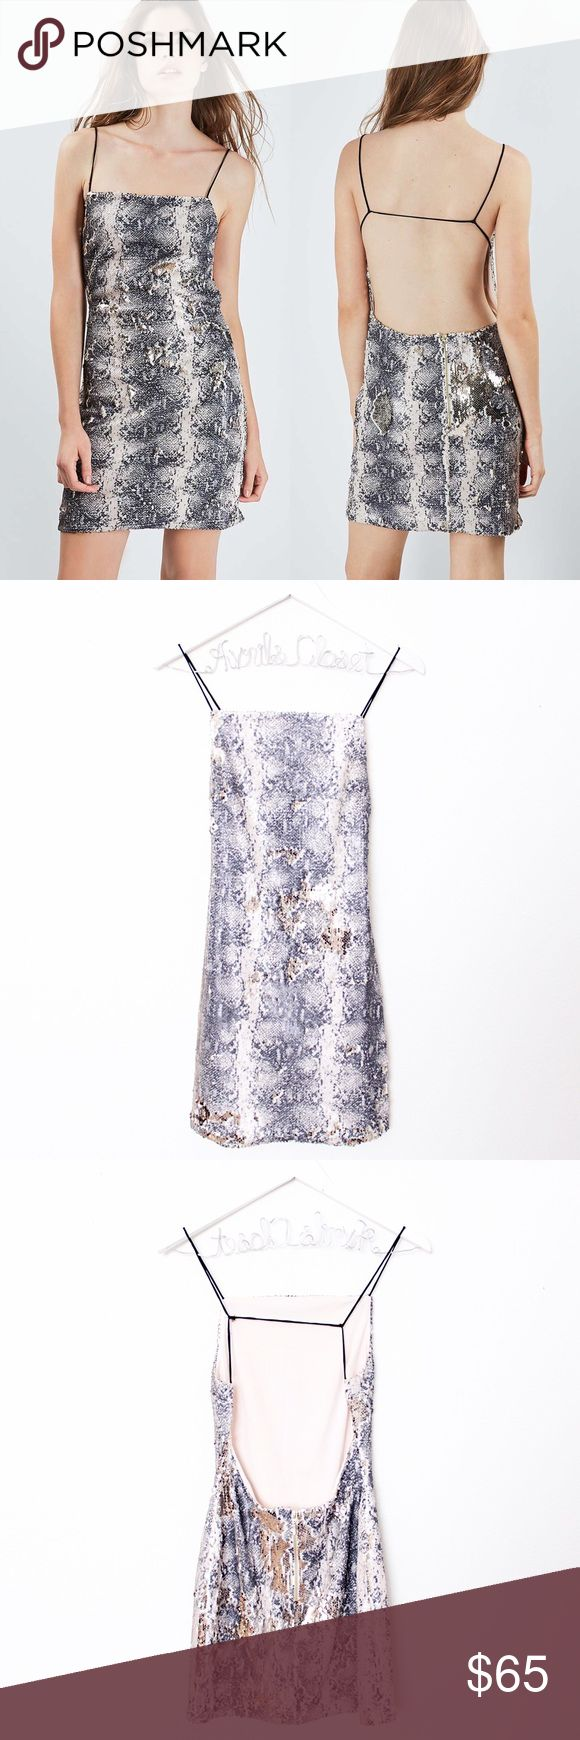 """Metallic Snakeskin Sequin Backless Dress Topshop ⑊ no size tag (fits like a size 4 — check measurements) ⑊ MSRP $125.00  ⌁ Measurements: 30"""" length 29"""" bust 25.5"""" waist  ⌁ Material: no material tag  ⌁ Condition: Used once. No visible wear. Still in great condition!  Comment below if you have any questions. Please make all offers using the """"offer"""" button. No trades. No holds. Comes from a smoke-free/pet-free home. Not responsible for lost/damaged mail. All sales are final. ♡ Topshop Dresses…"""